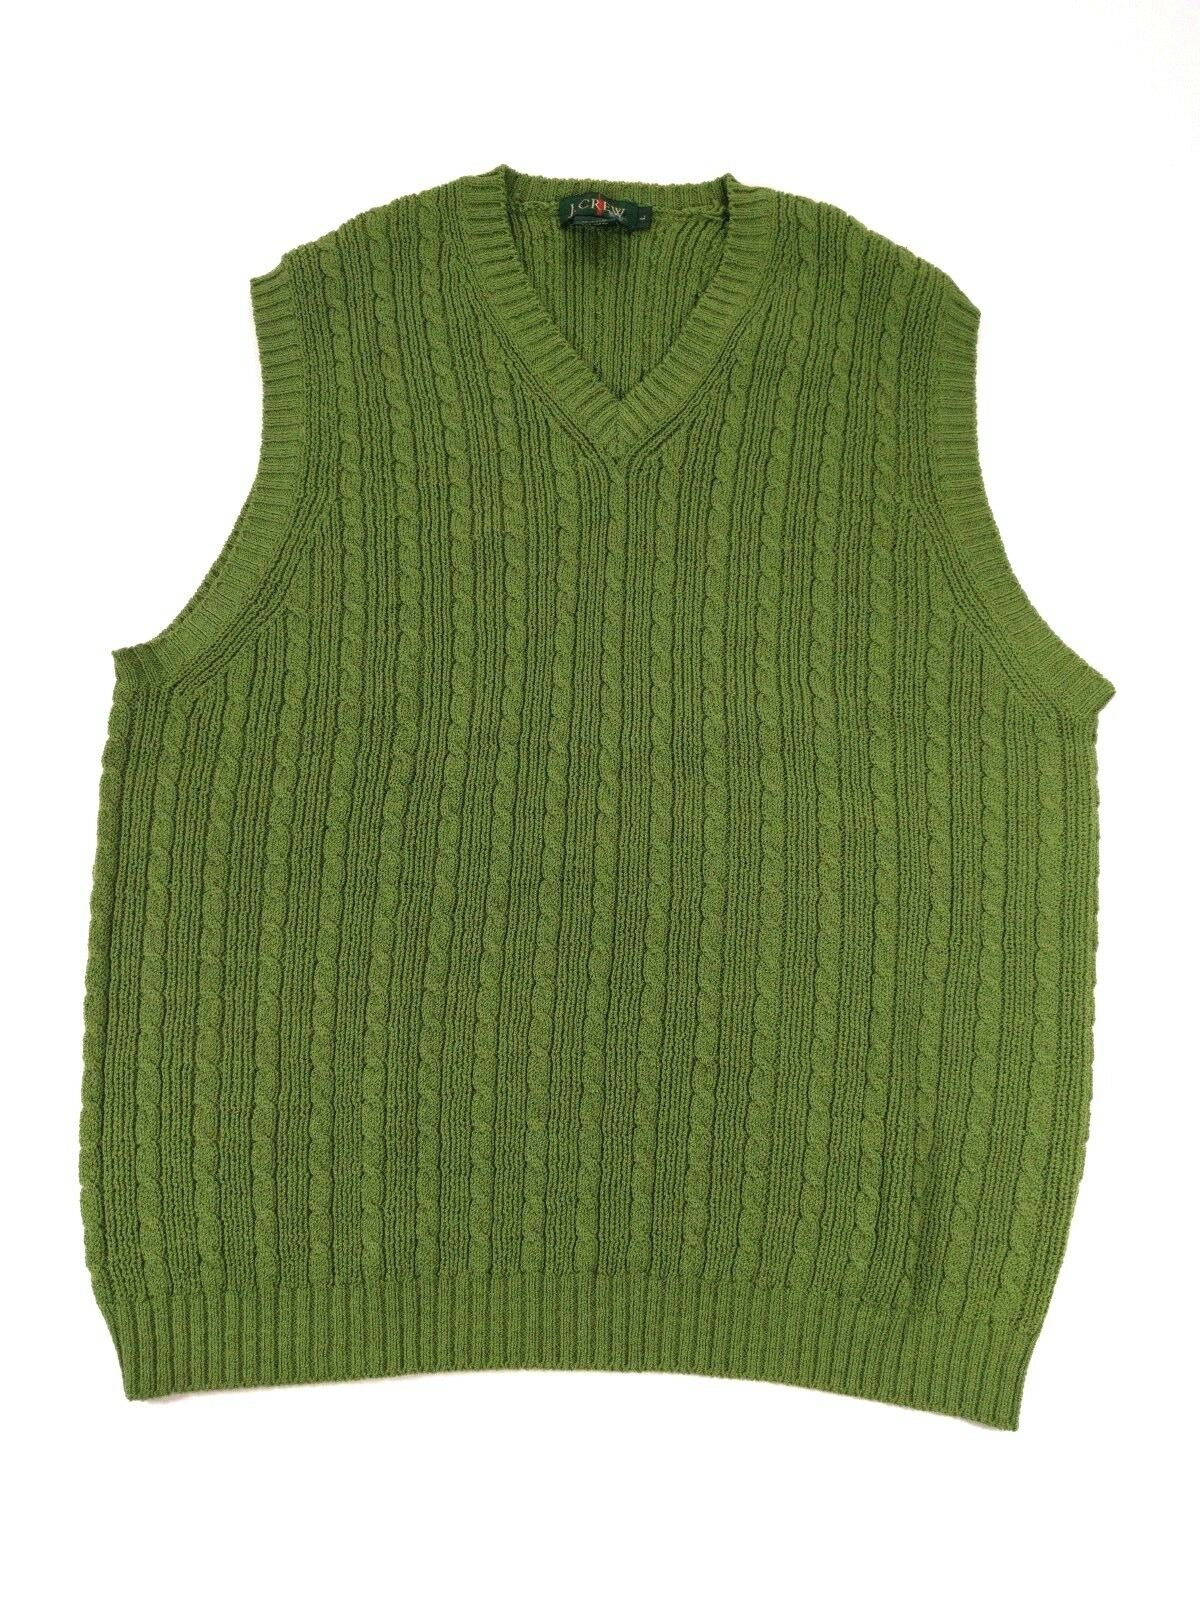 J. Crew Men's Green Wool Blend Cable Knit Sweater Vest Large